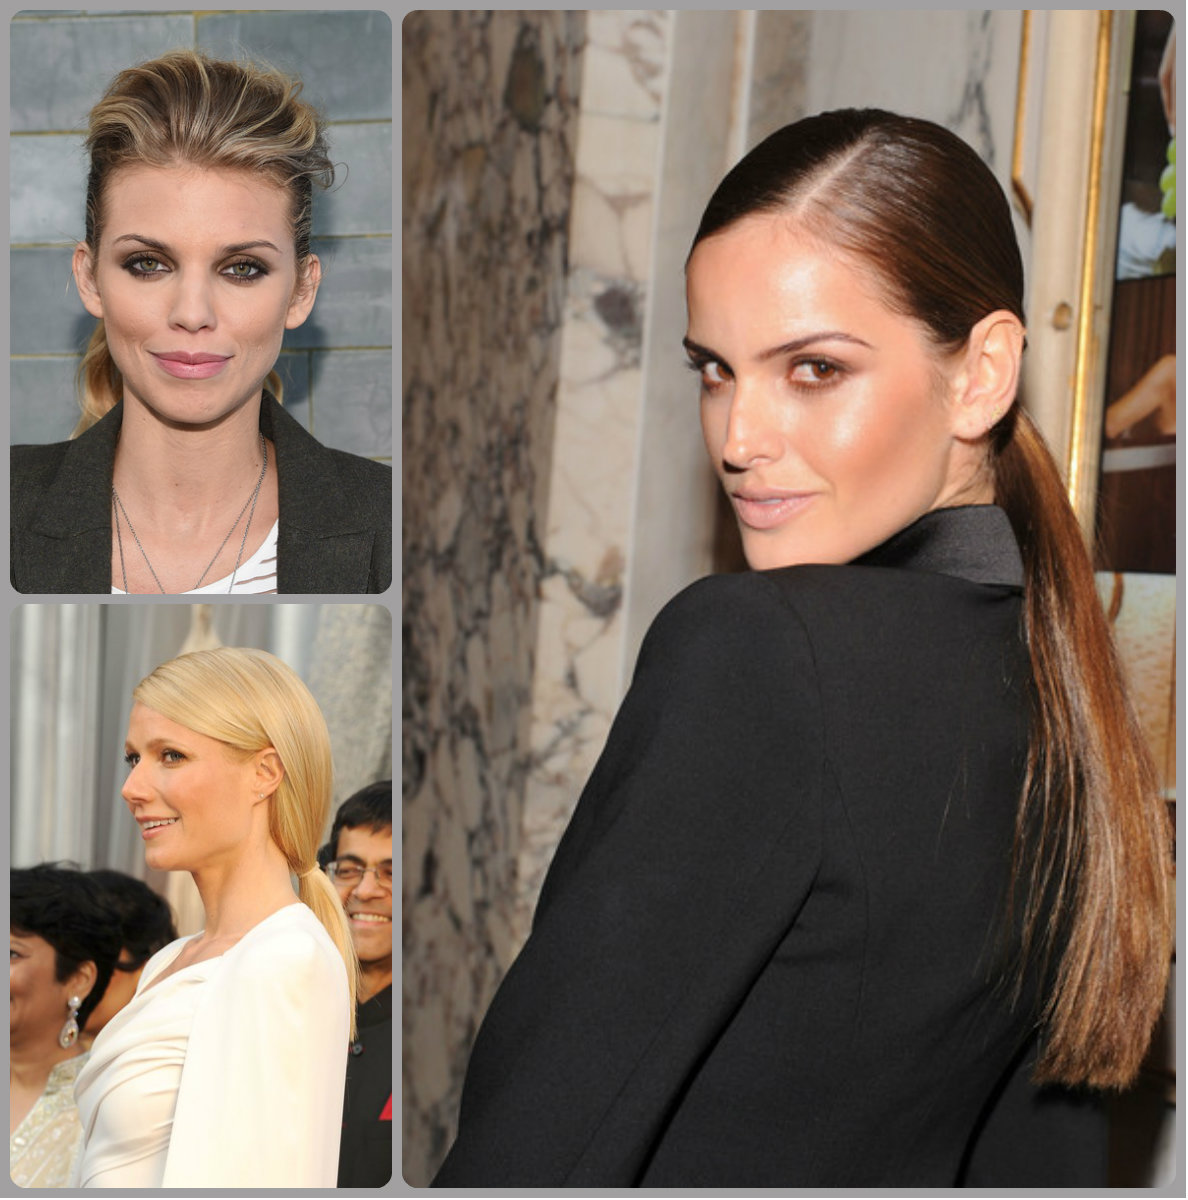 Bossy Ponytail Hairstyles for Work